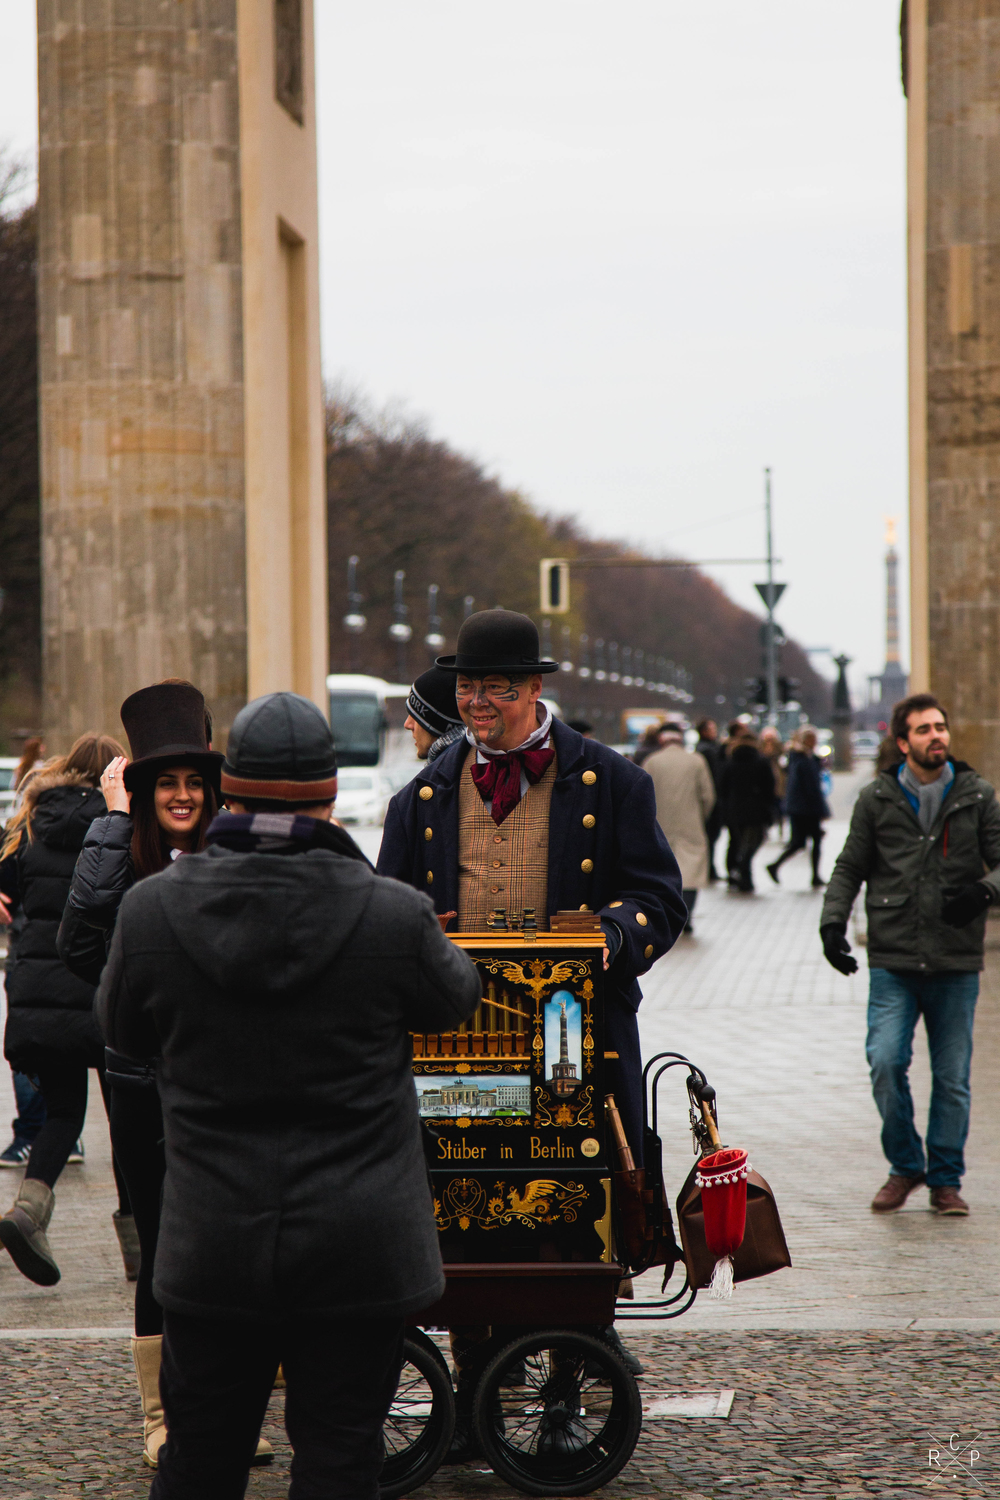 Street Performer 2 - Brandenburg Gate, Berlin, Germany 02/12/2015